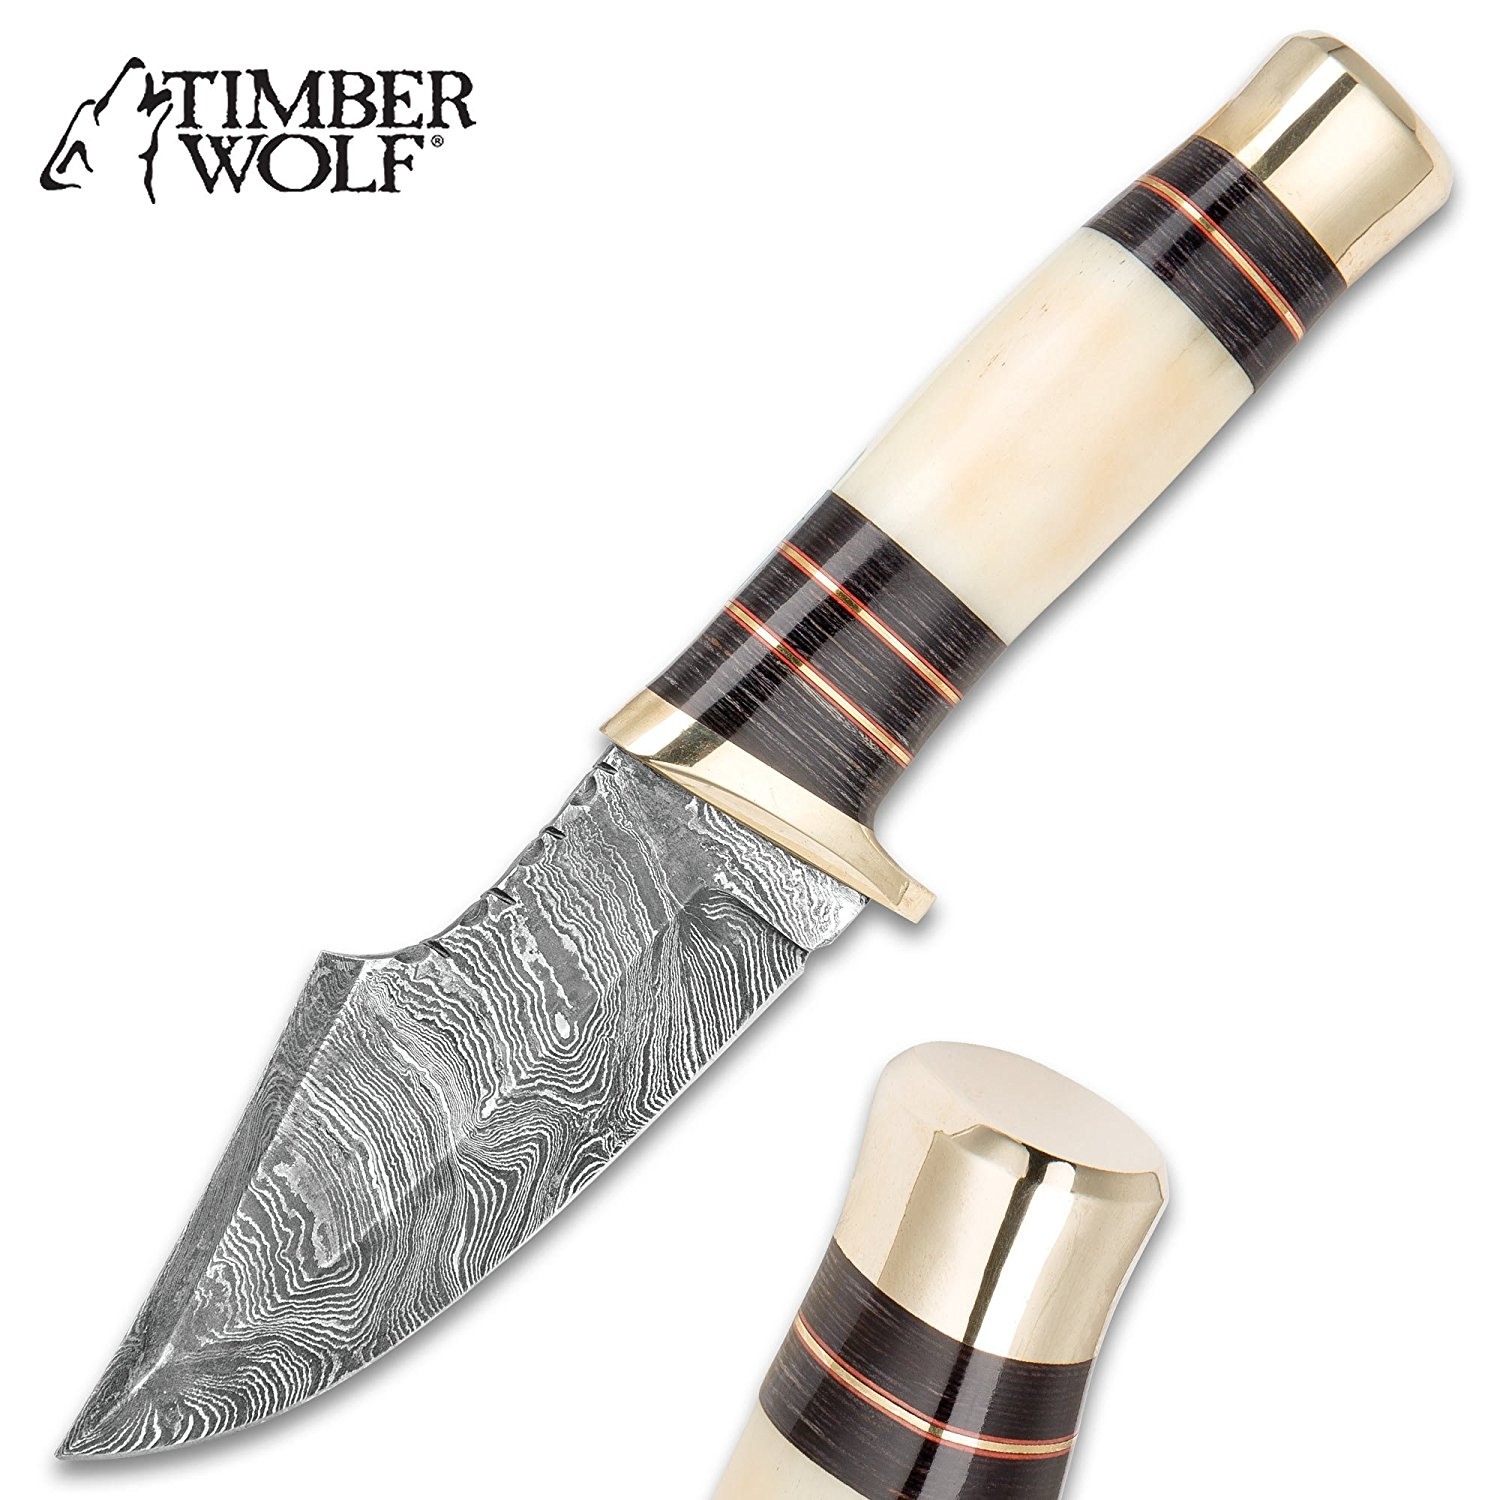 Timber Wolf Foxclaw Skinner - Damascus Steel Fixed Blade with Scalloping - Genuine Bone, Pakkwood Handle - Brass Spacers, Guard, Pommel - Leather Sheath - Skinning, Camping, Hunting, Outdoors